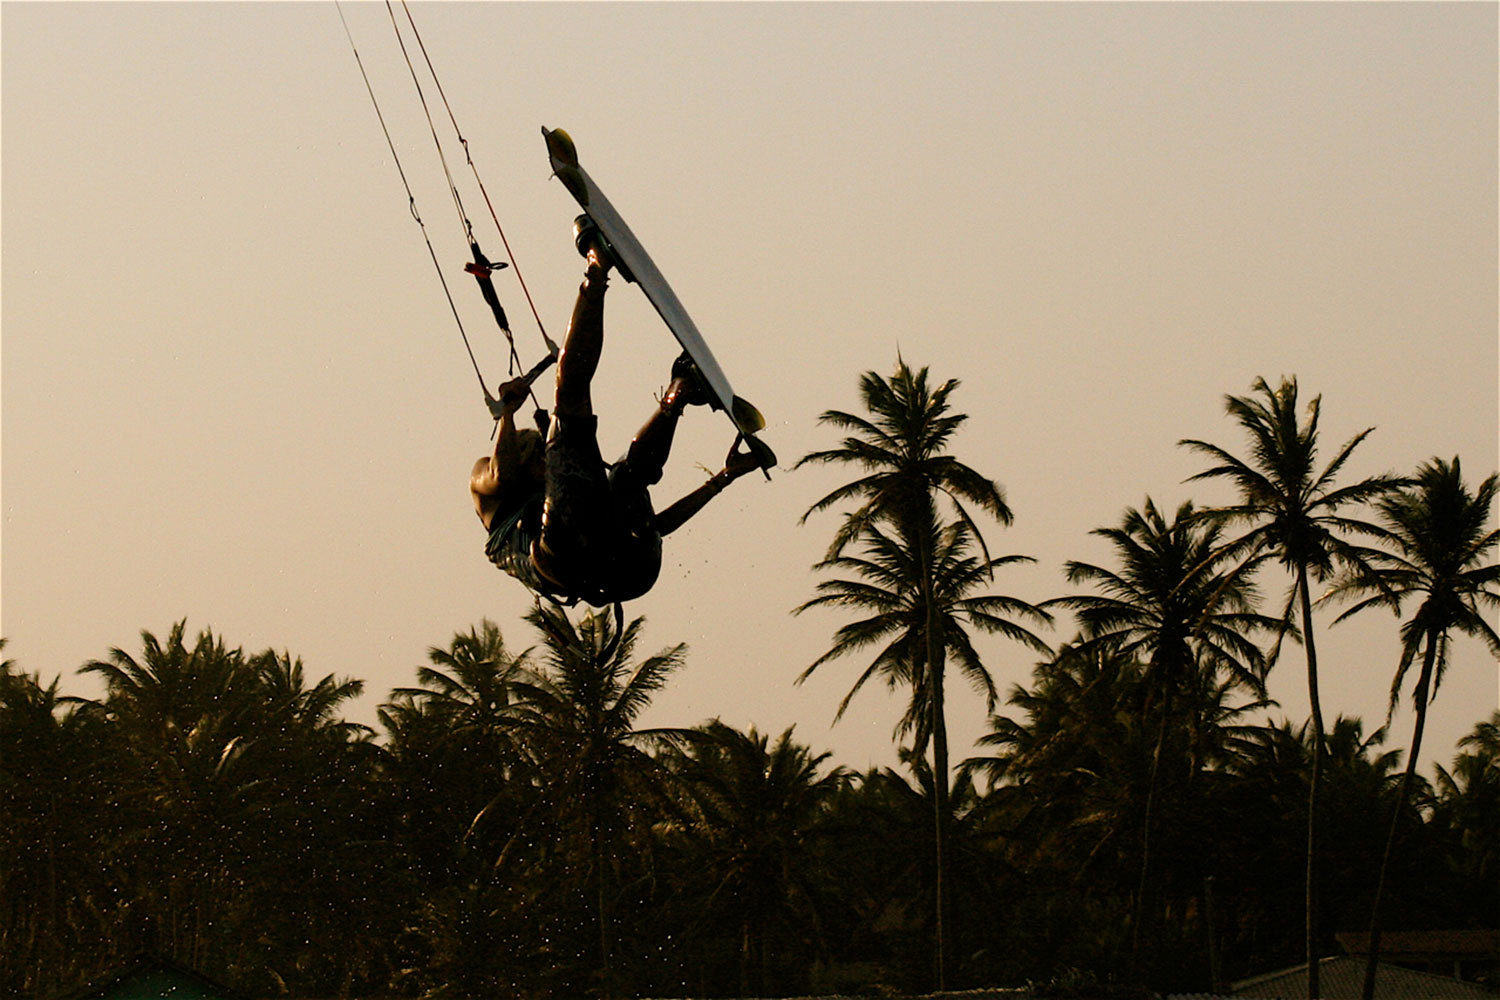 sunset-sessions-brazil-intermediate-advanced-kitesurfing-holidays-.jpg